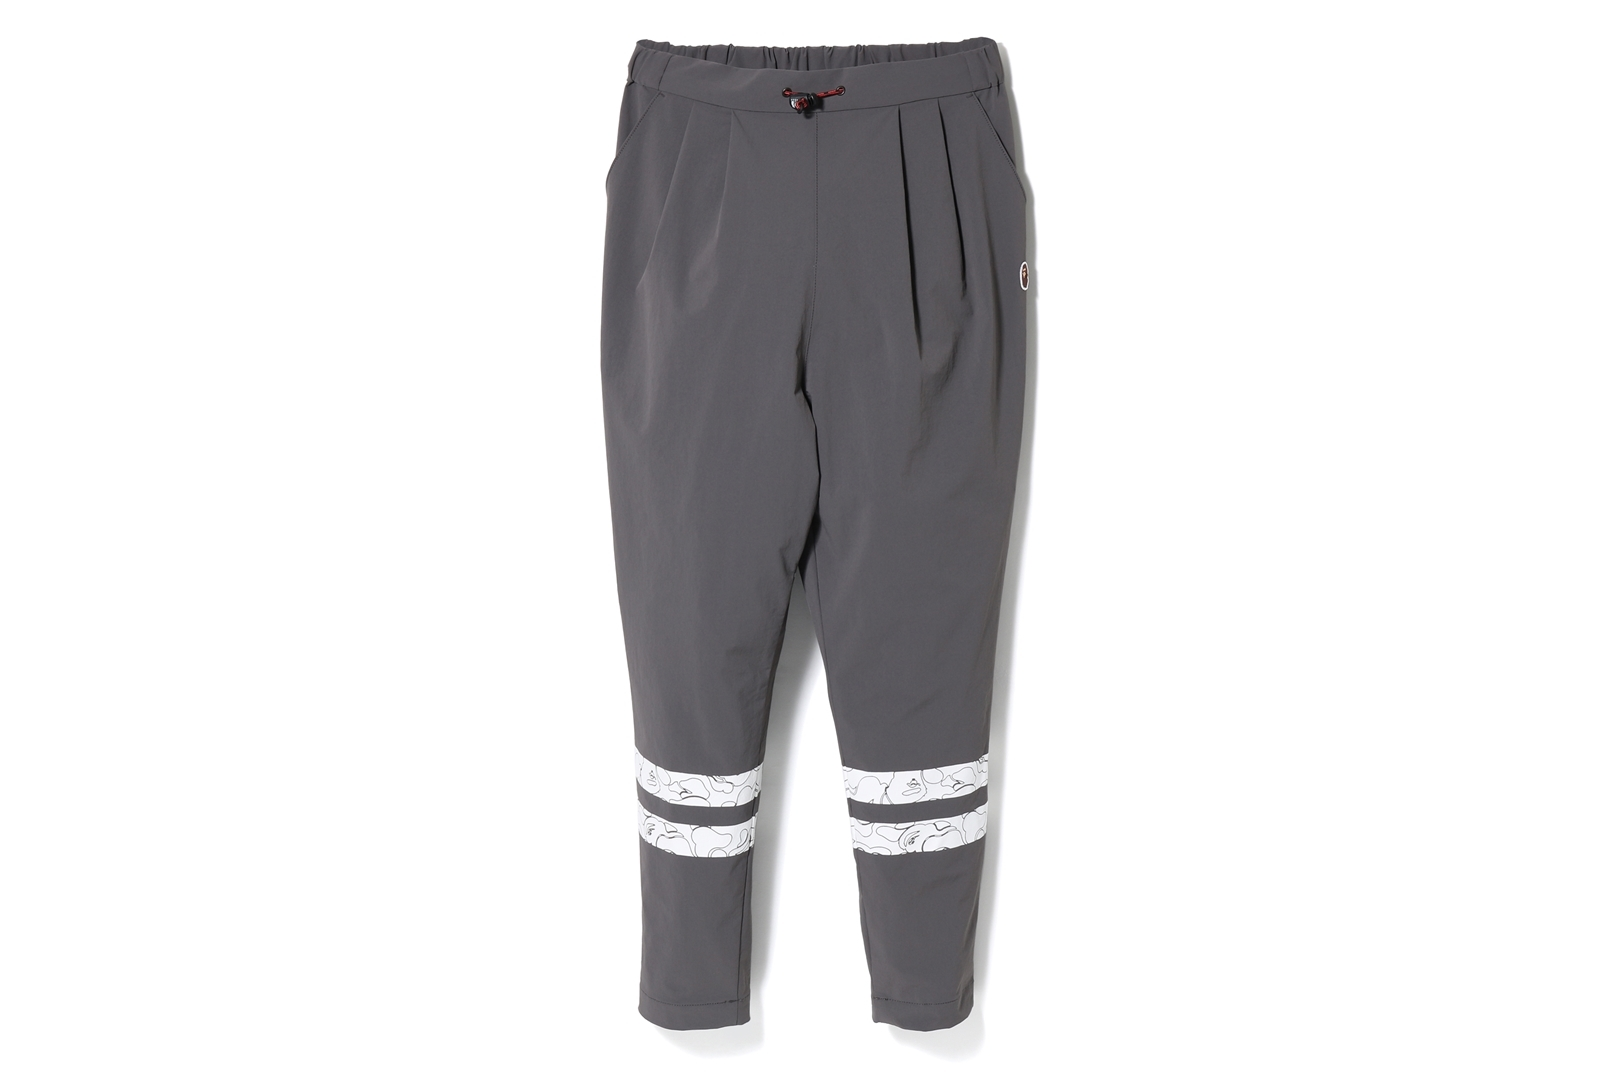 APE HEAD 2TUCK STRETCH TAPERED PANTS_a0174495_13010903.jpg